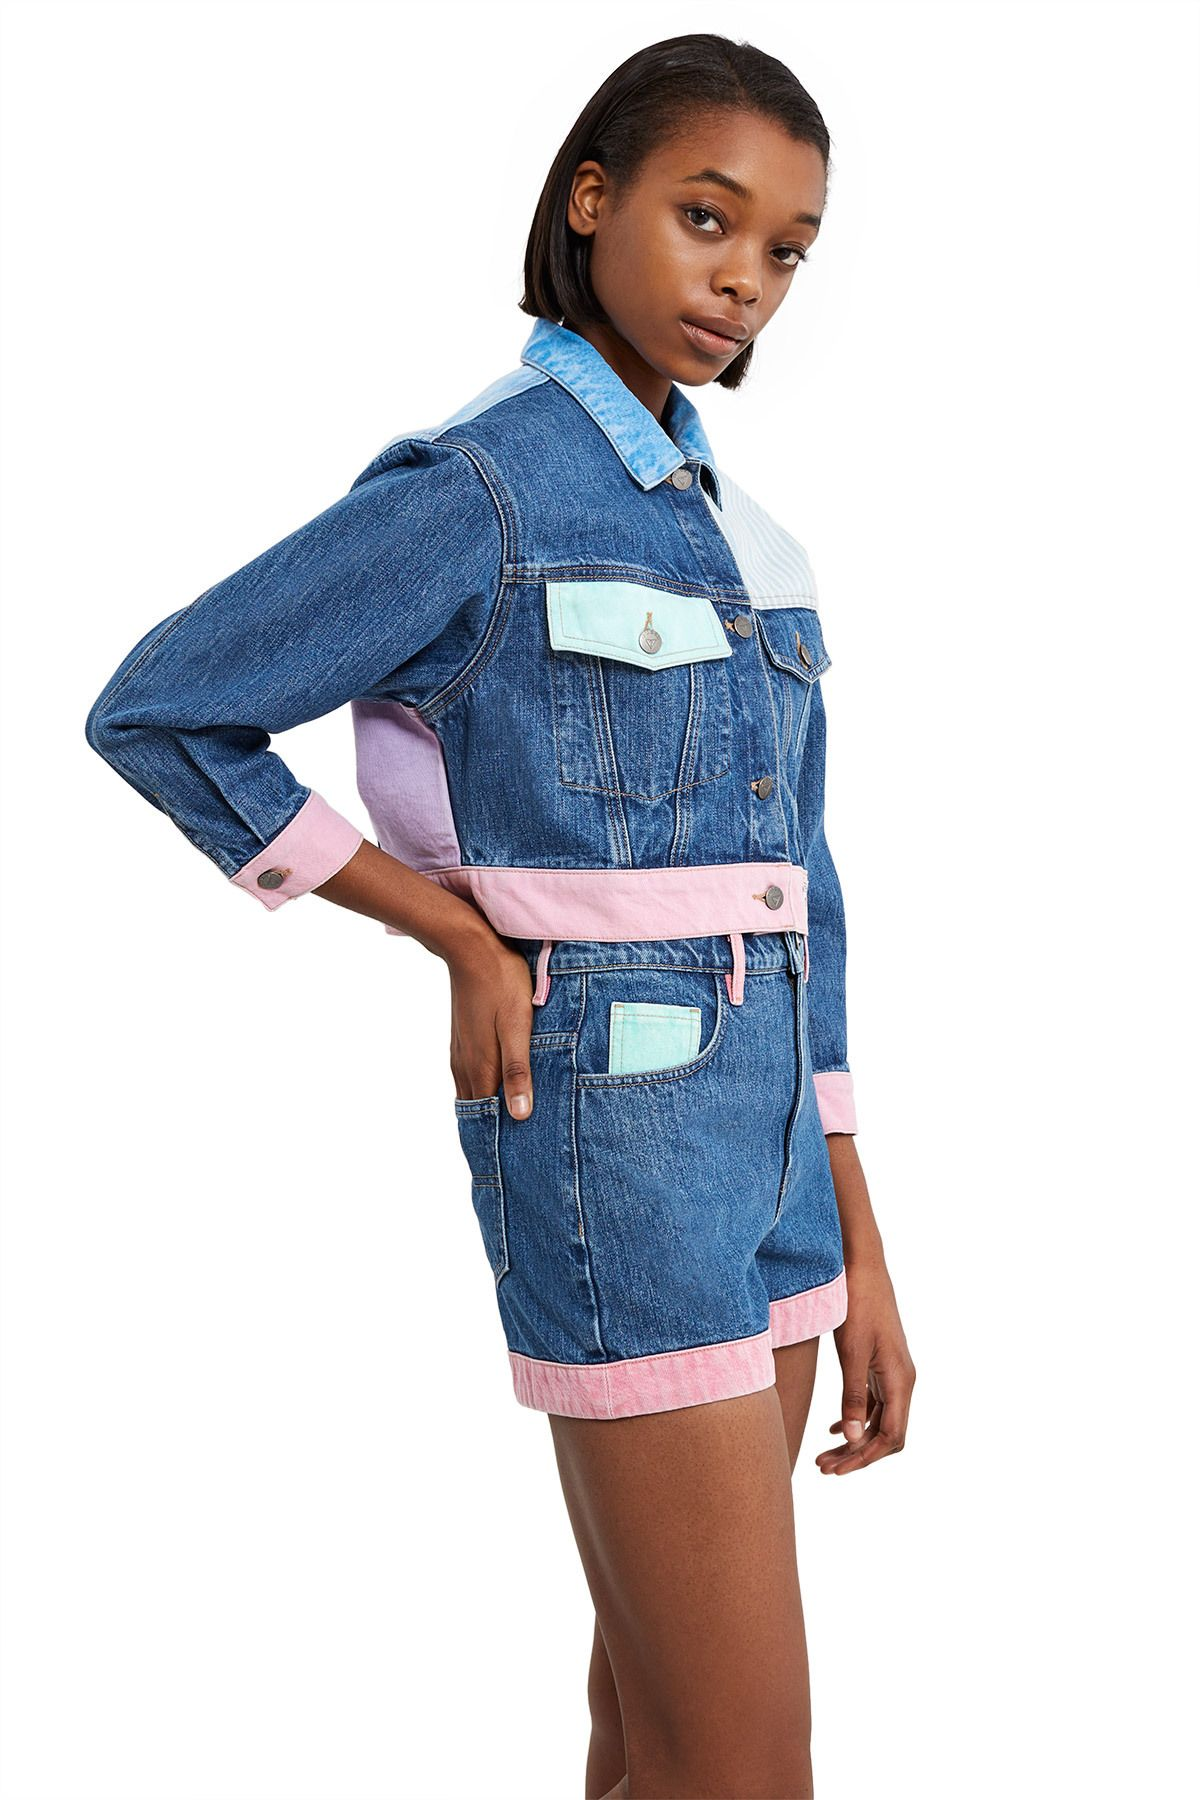 Guess Originals A Ap Rocky Cropped Patchwork Denim Jacket Note Due To The Nature Of The Fabric And Wash Denim Fashion Women Denim Inspiration Denim Fashion [ 1800 x 1200 Pixel ]